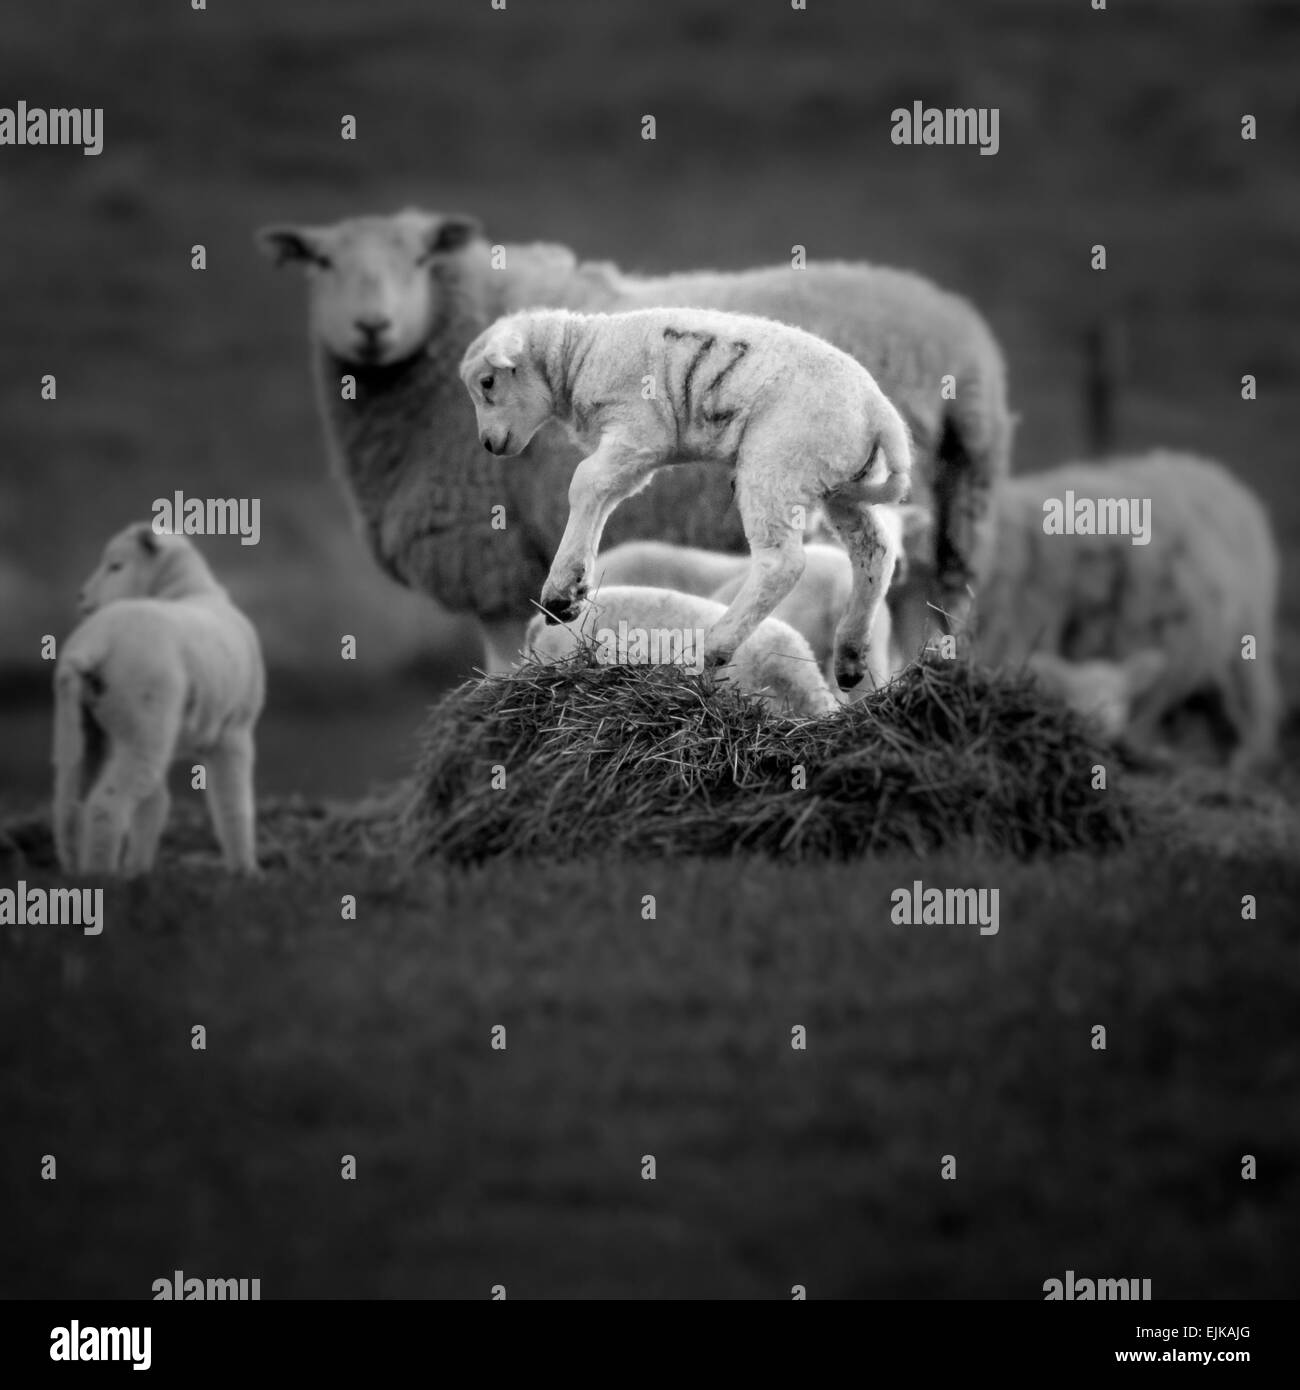 The joys of spring - jumping lambs - Stock Image